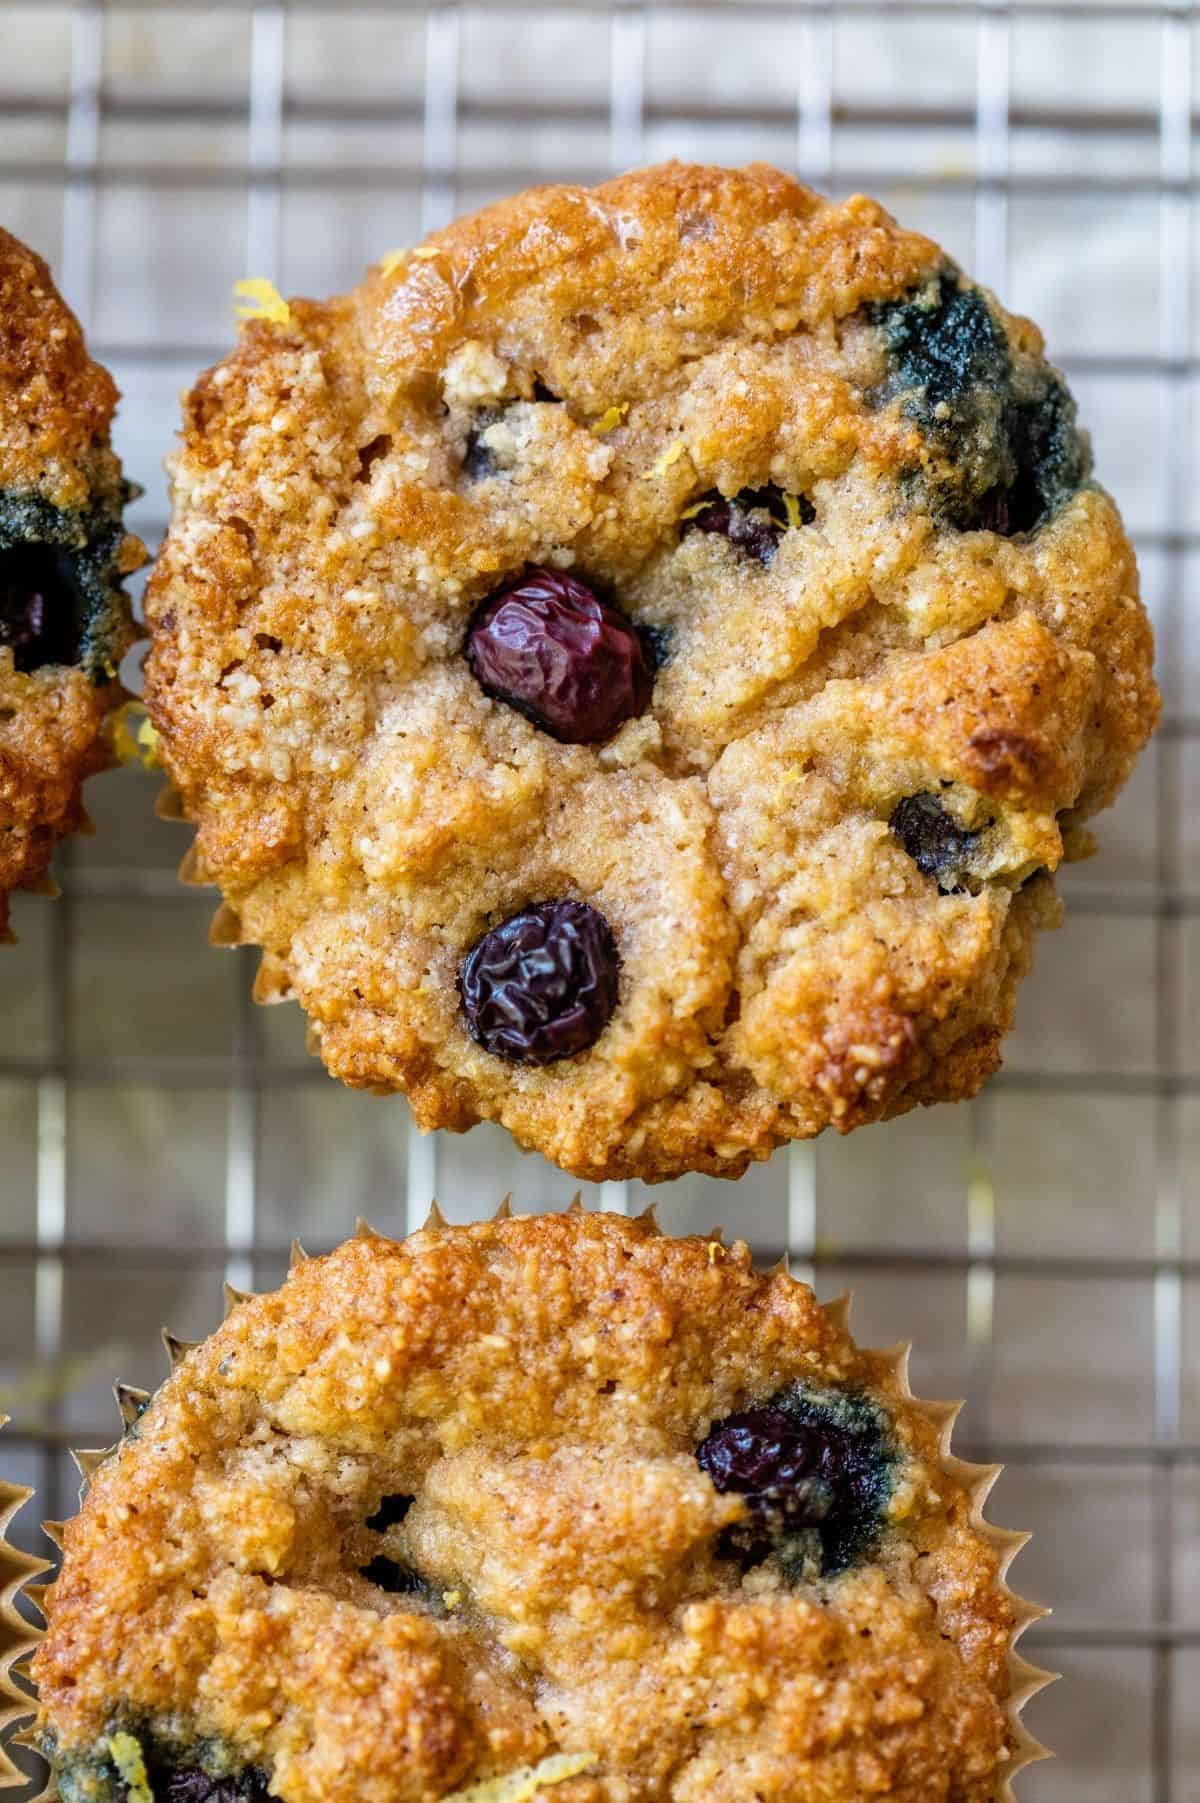 keto blueberry muffins cooling on a wire rack